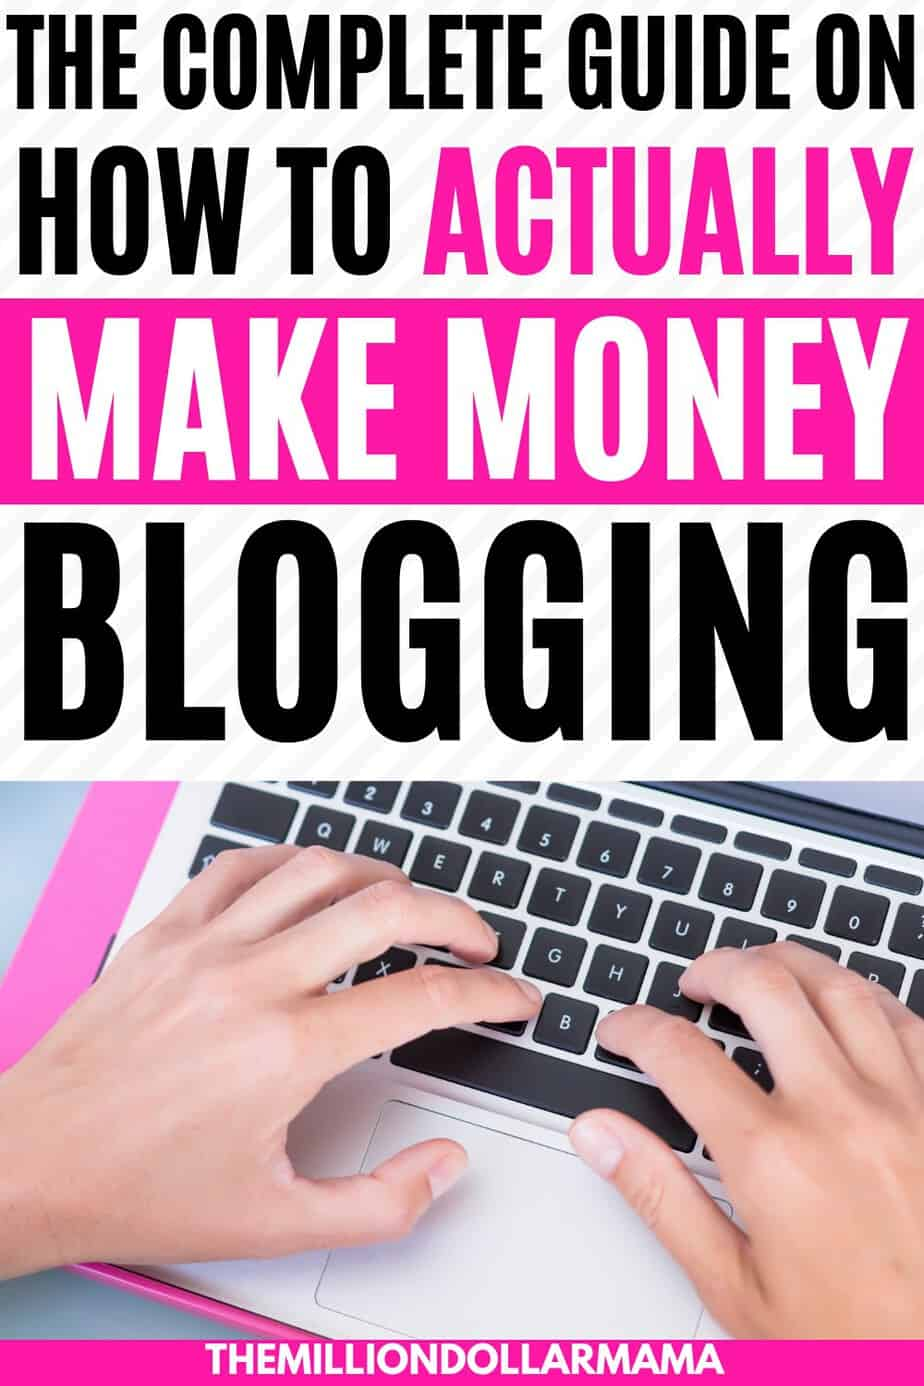 How to Make Money Blogging - The Complete Guide. Learn how to make money blogging, from A-Z. This blogging guide is written by a full-time blogger who has multiple profitable blogs!